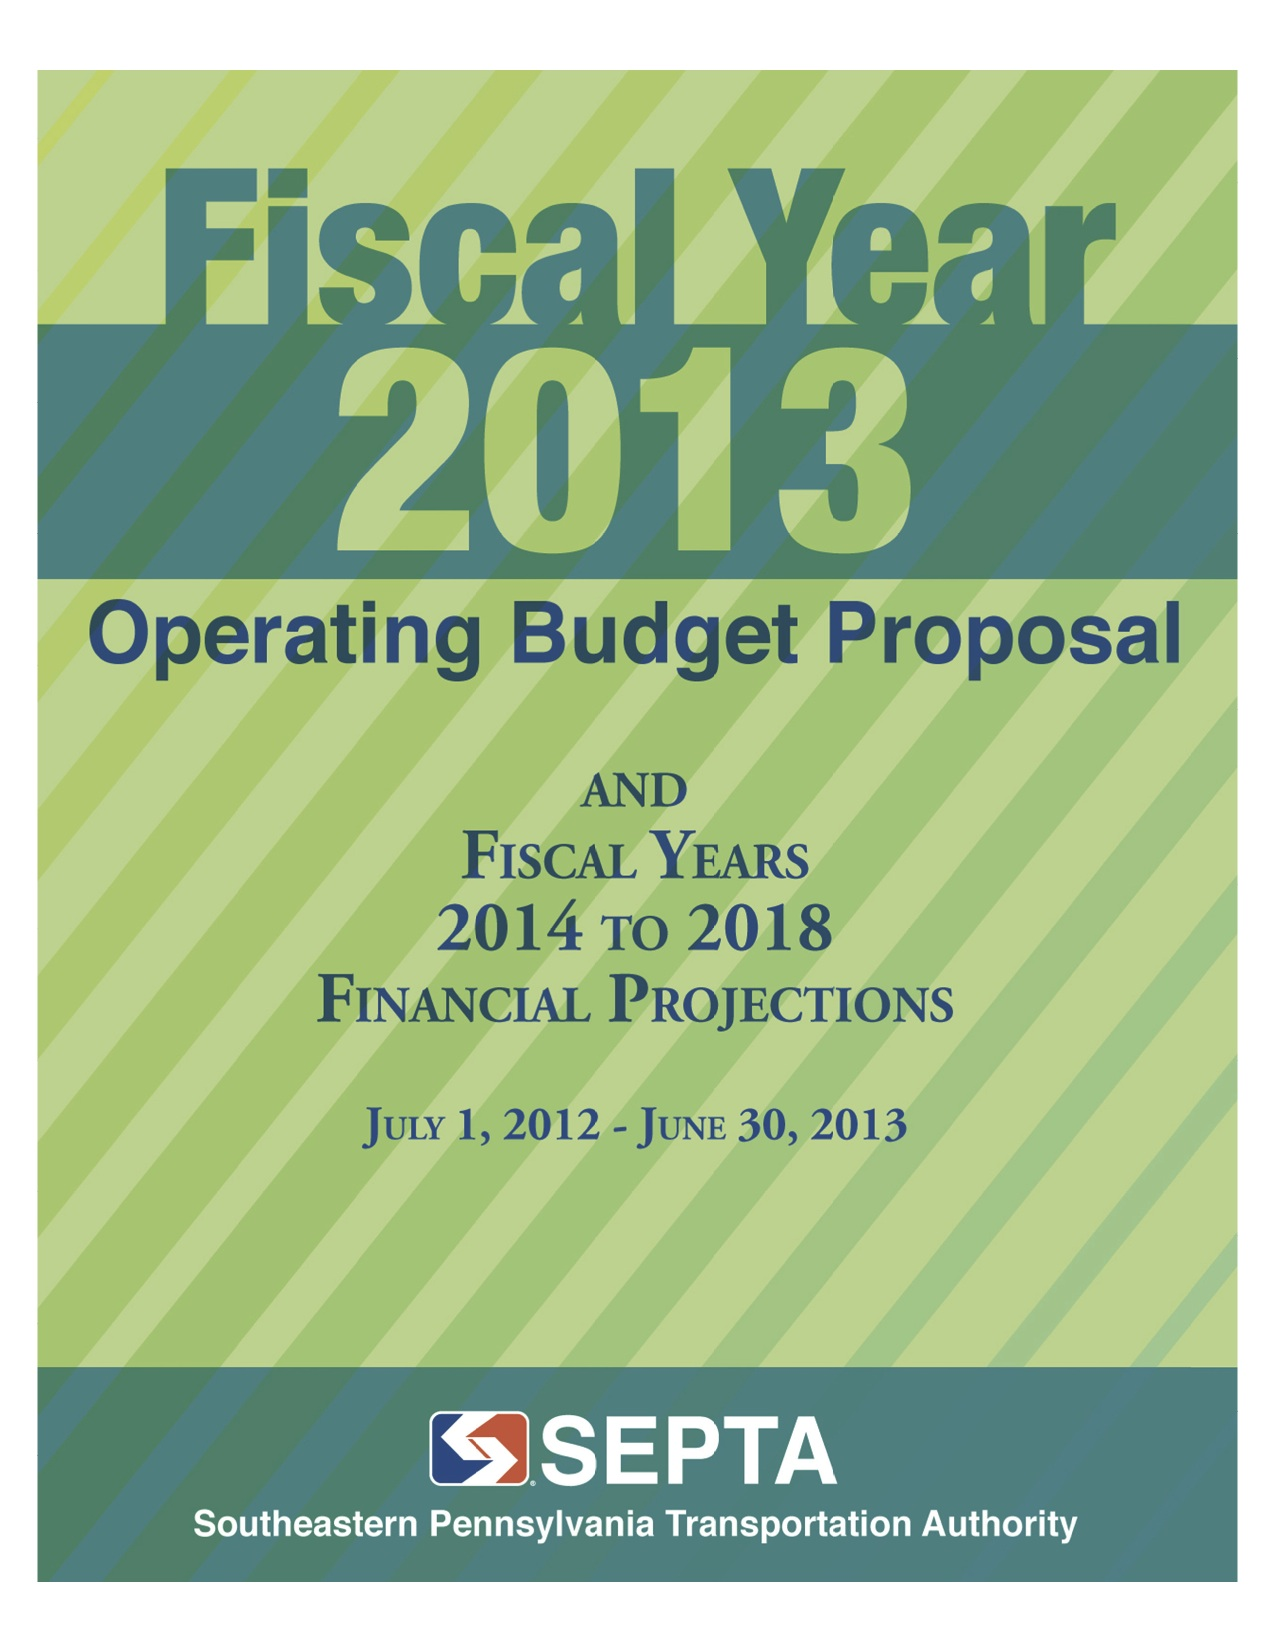 SEPTA predicts future budget deficits